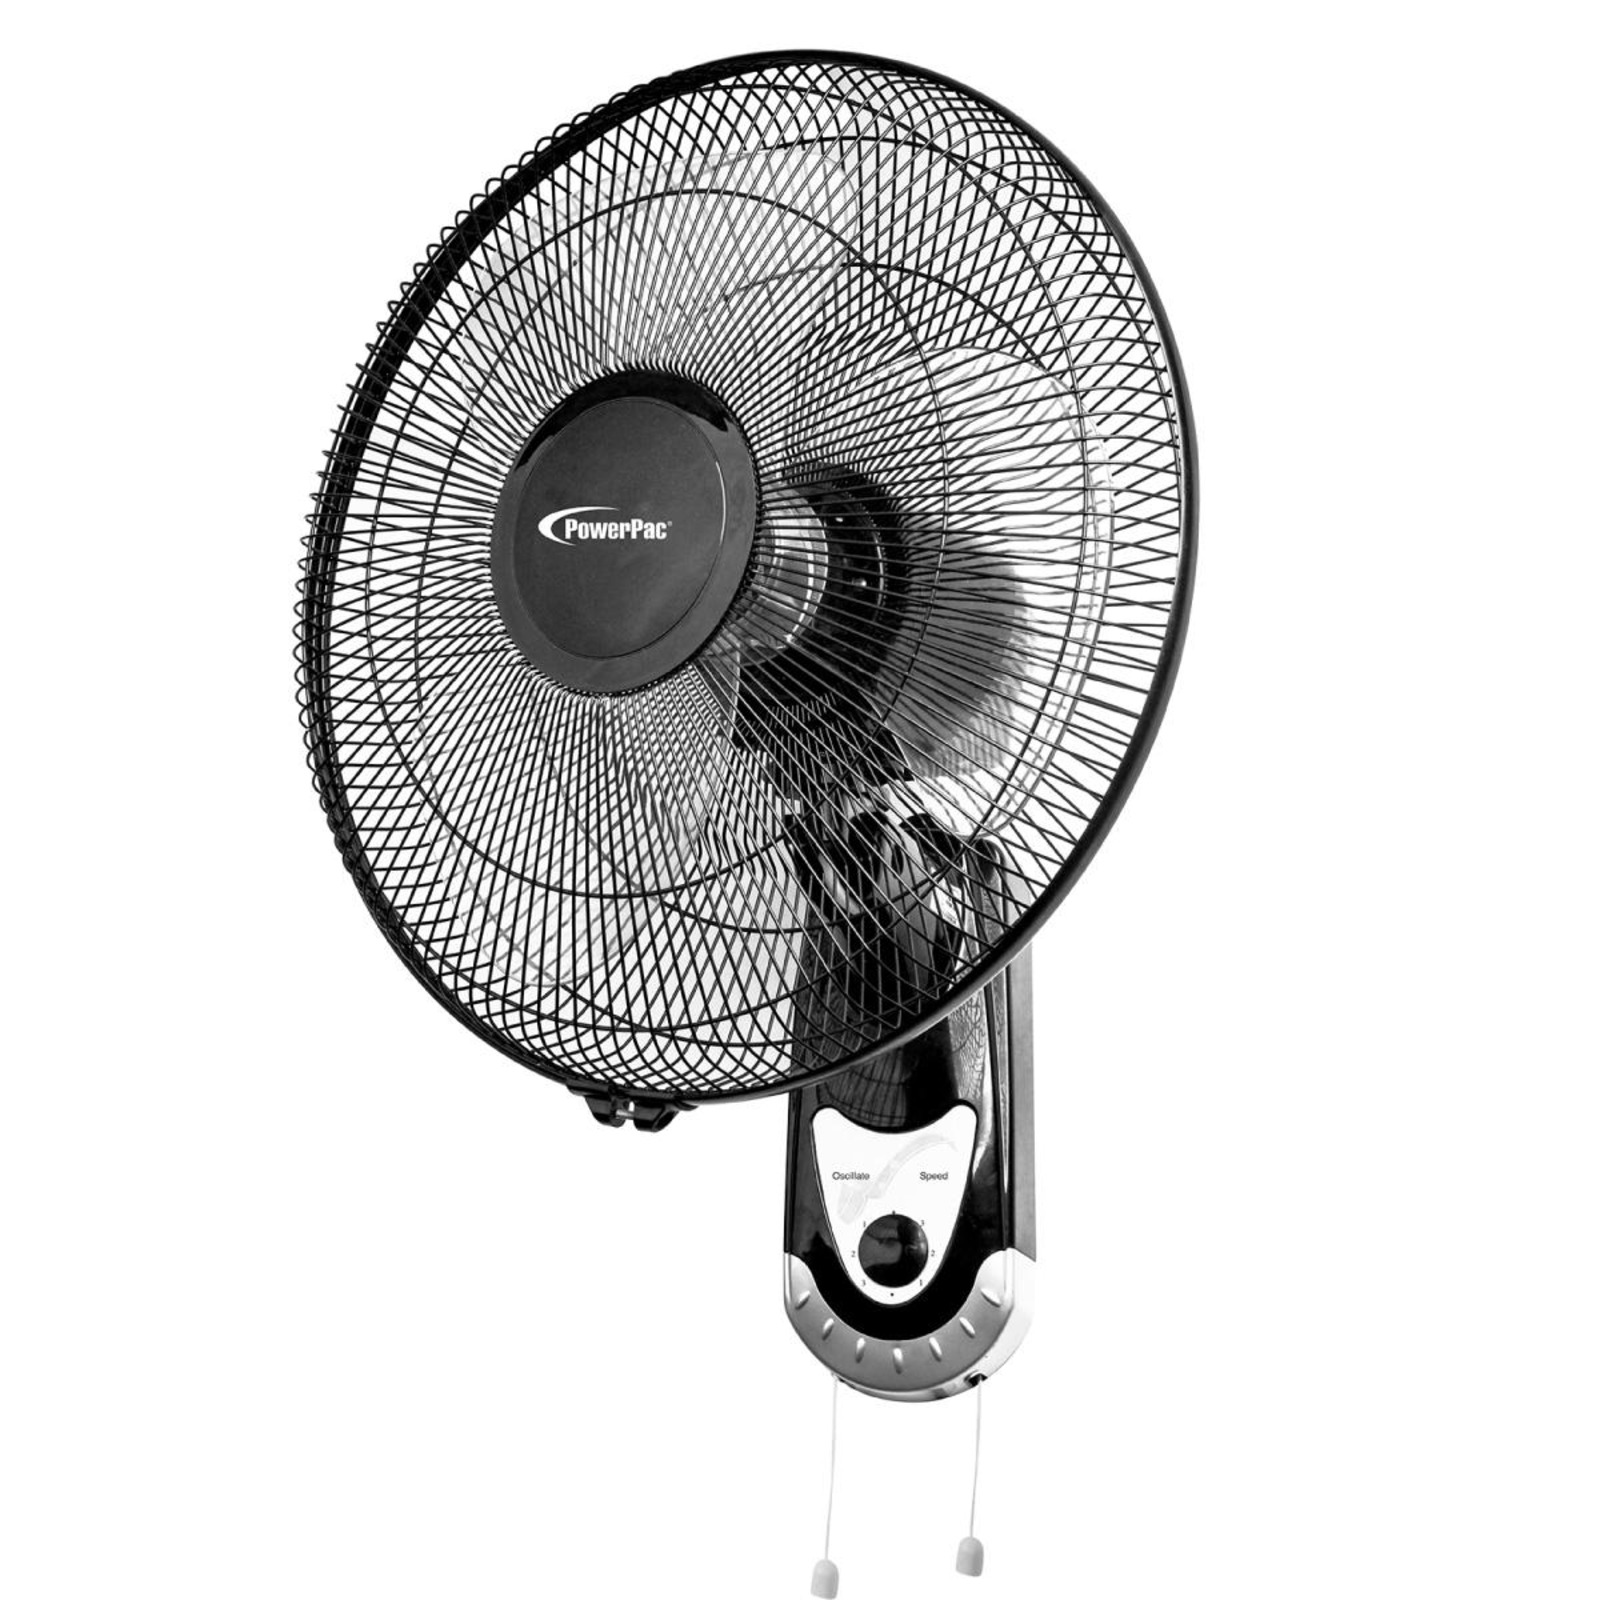 PowerPac 16 Inch Wall Fan With Oscillation - PPWF40